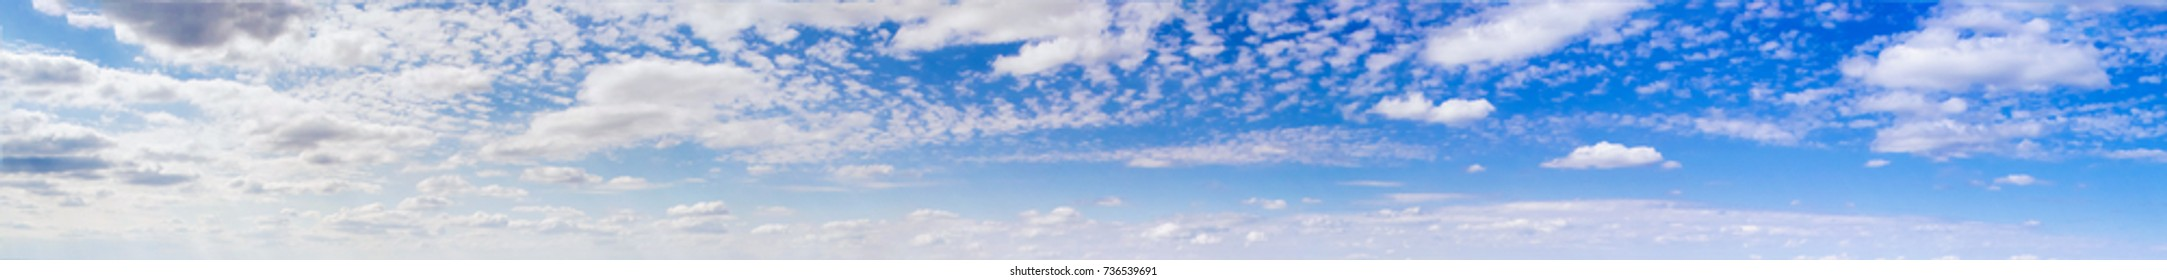 Panorama a summer landscape the sky with clouds, sunlight, a background. Shooting from air.